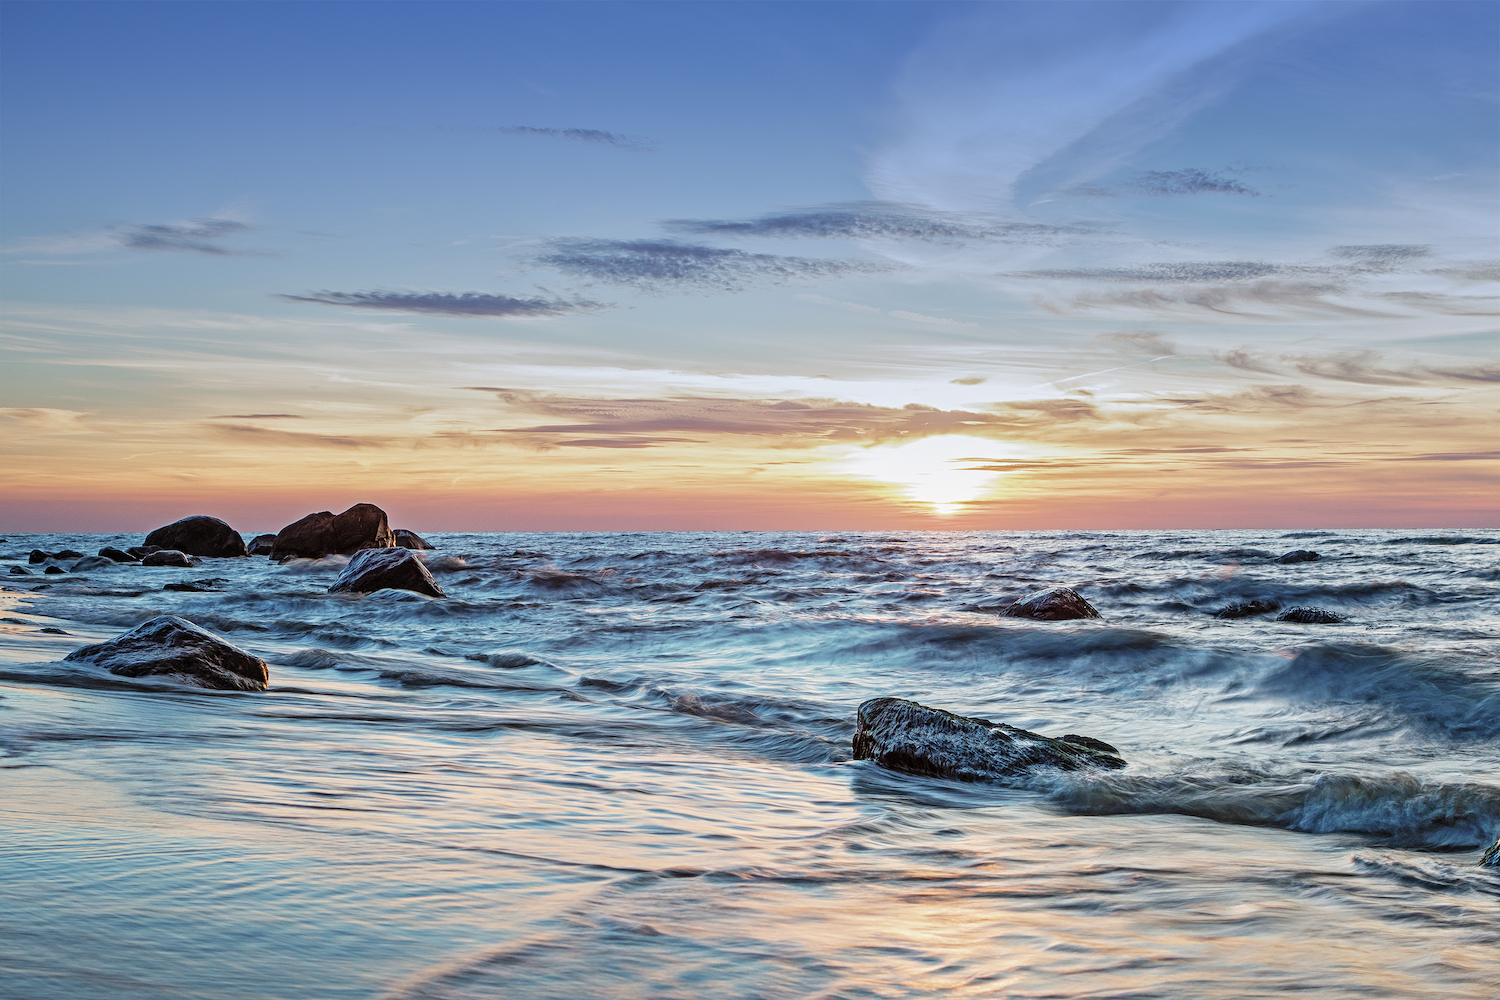 According to 26 experts from 21 scientific institutions, drastic changes in the Baltic Sea could be used as in invaluable model for predicting upcoming changes to oceans across the globe.